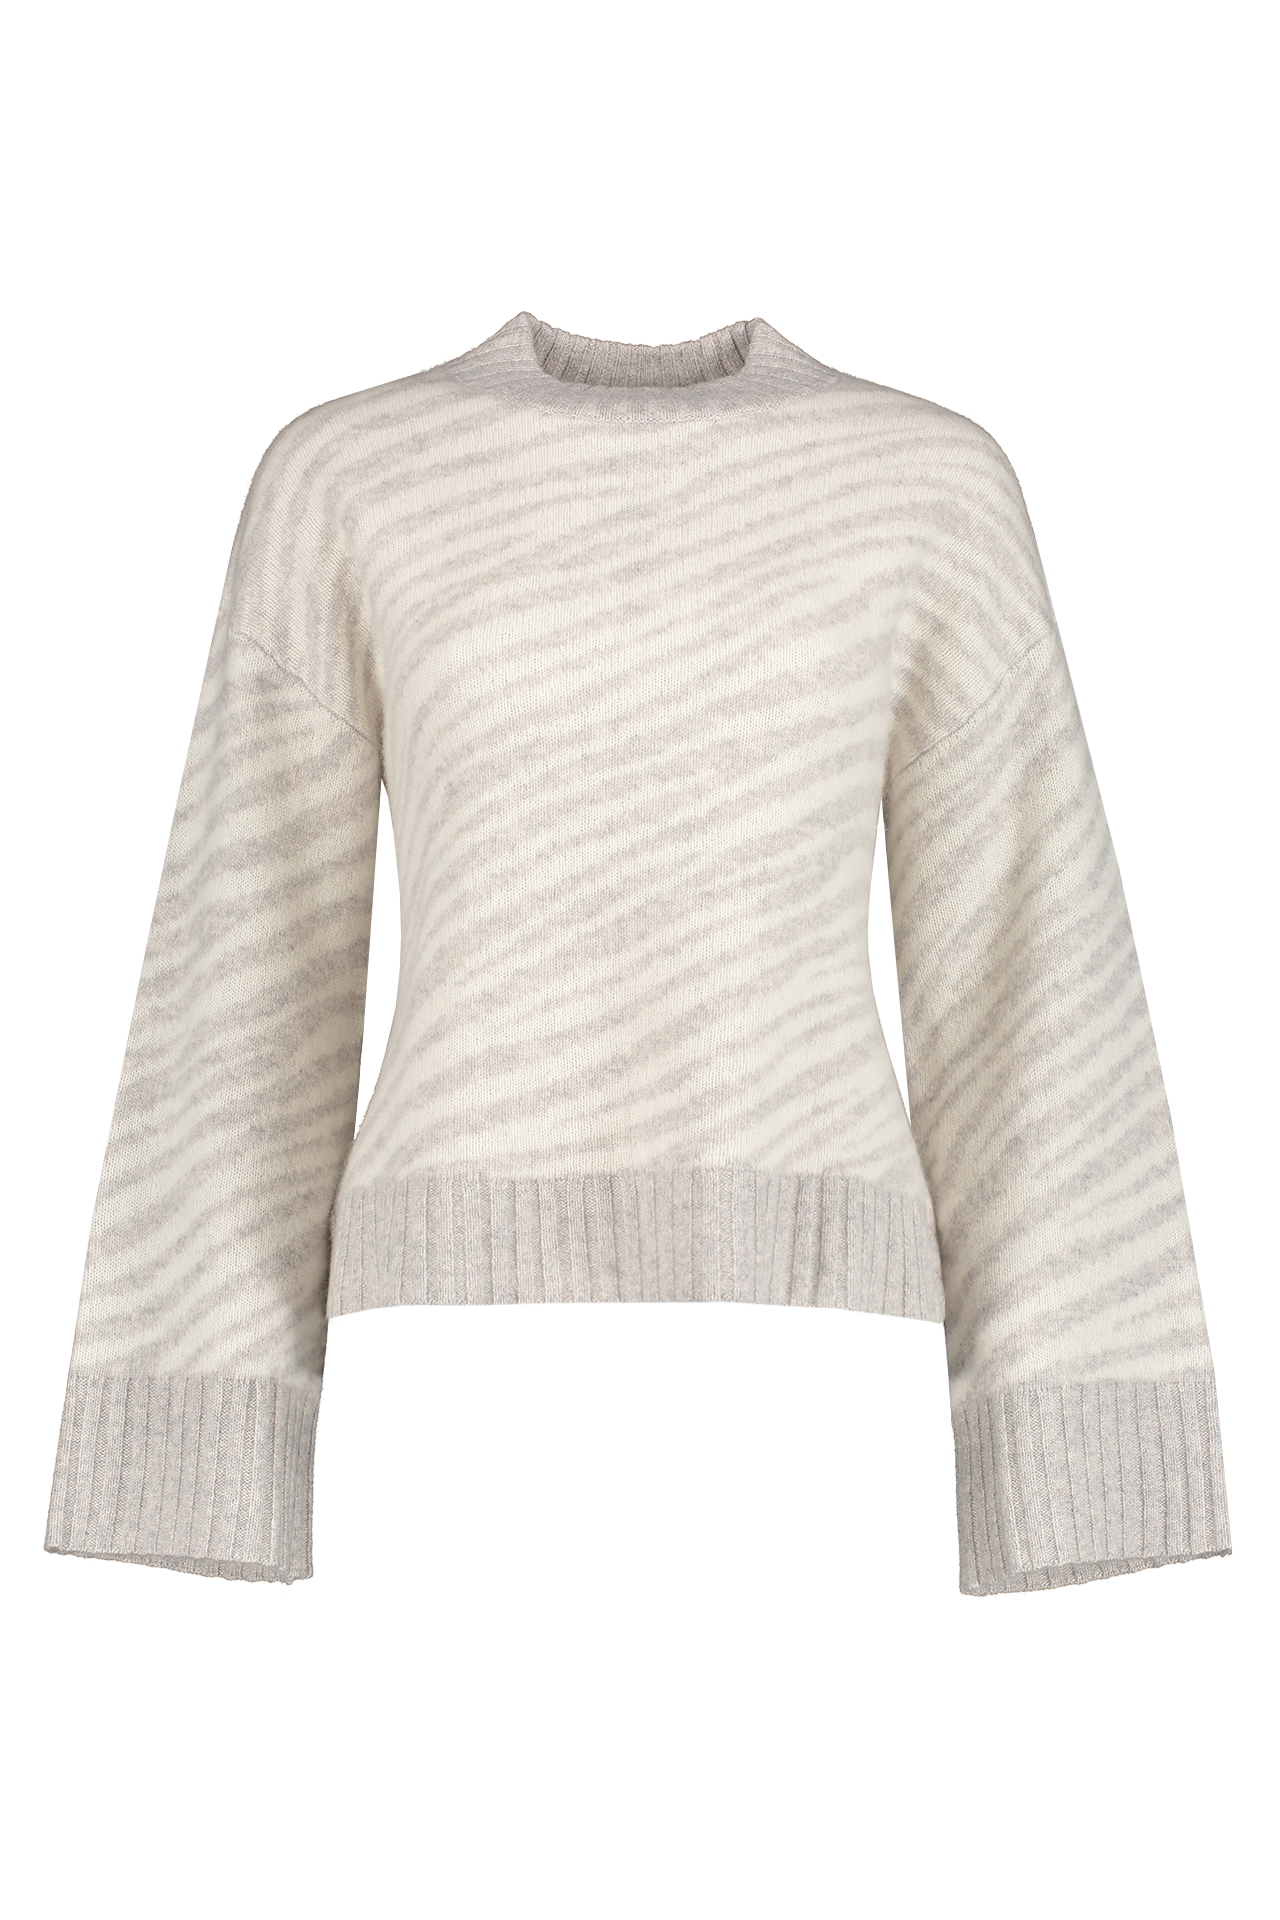 Front view image of White & Warren Zebra Jacquard Crewneck Sweater